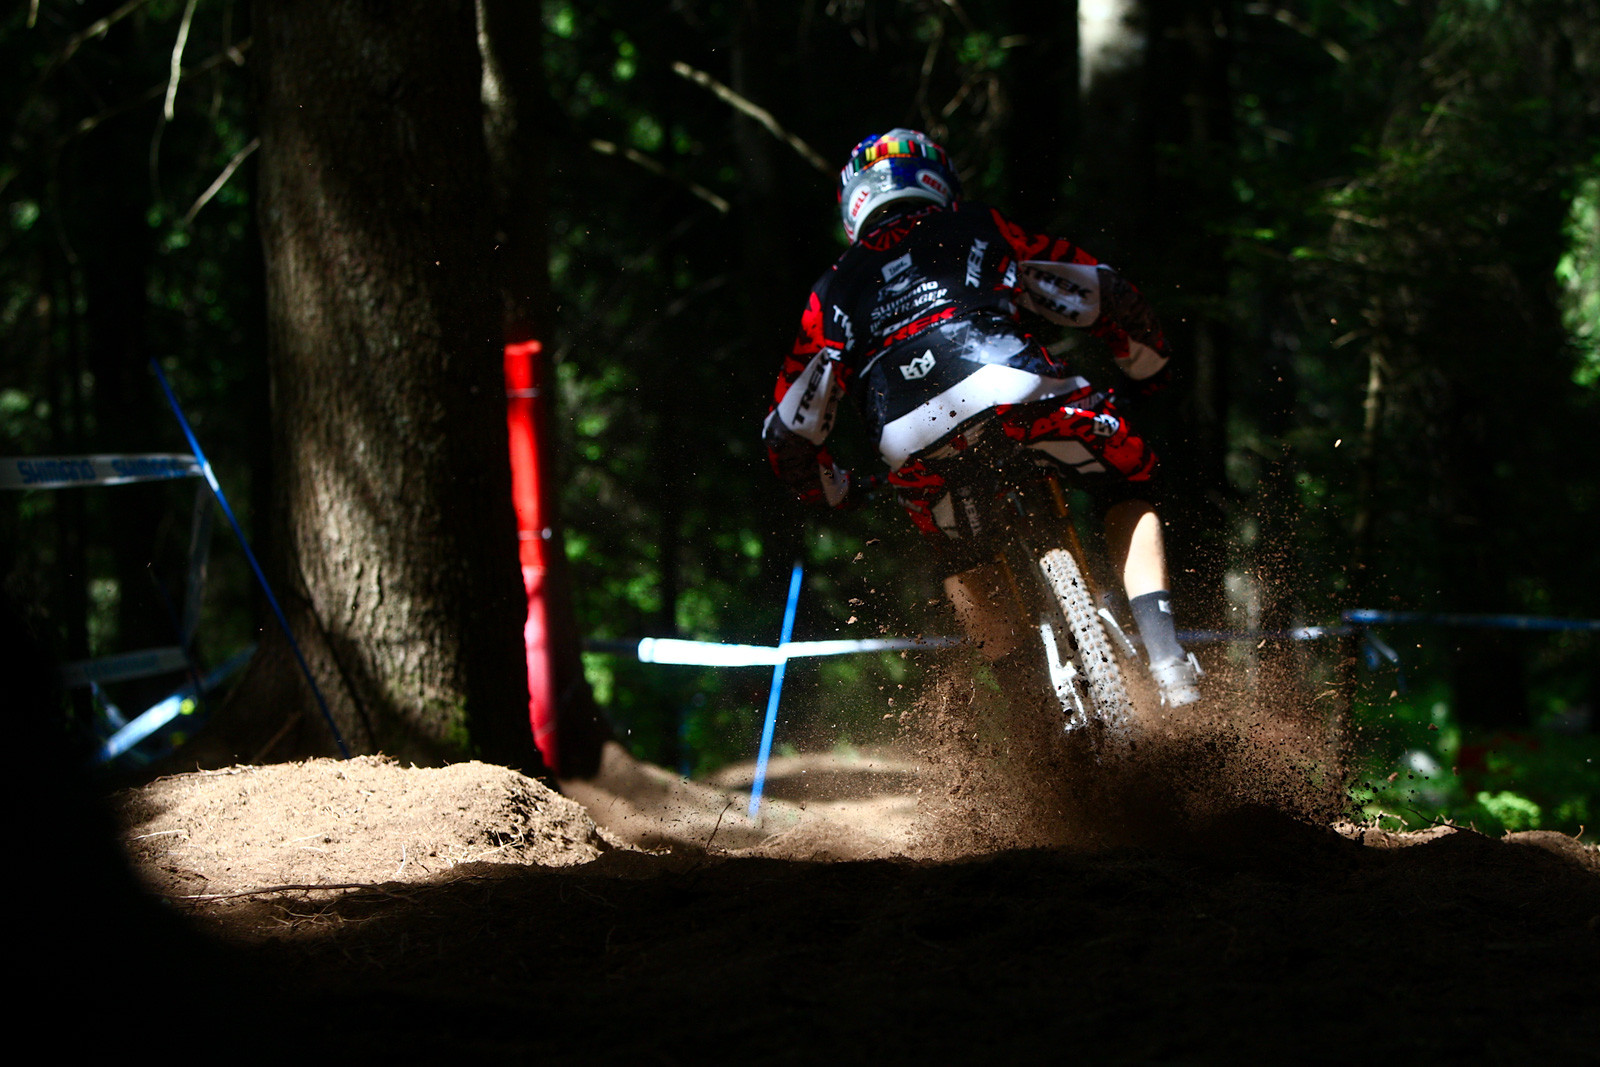 Aaron Gwin at Val di Sole 2012 - 2012 UCI World Cup, Val di Sole Day 2 - Mountain Biking Pictures - Vital MTB